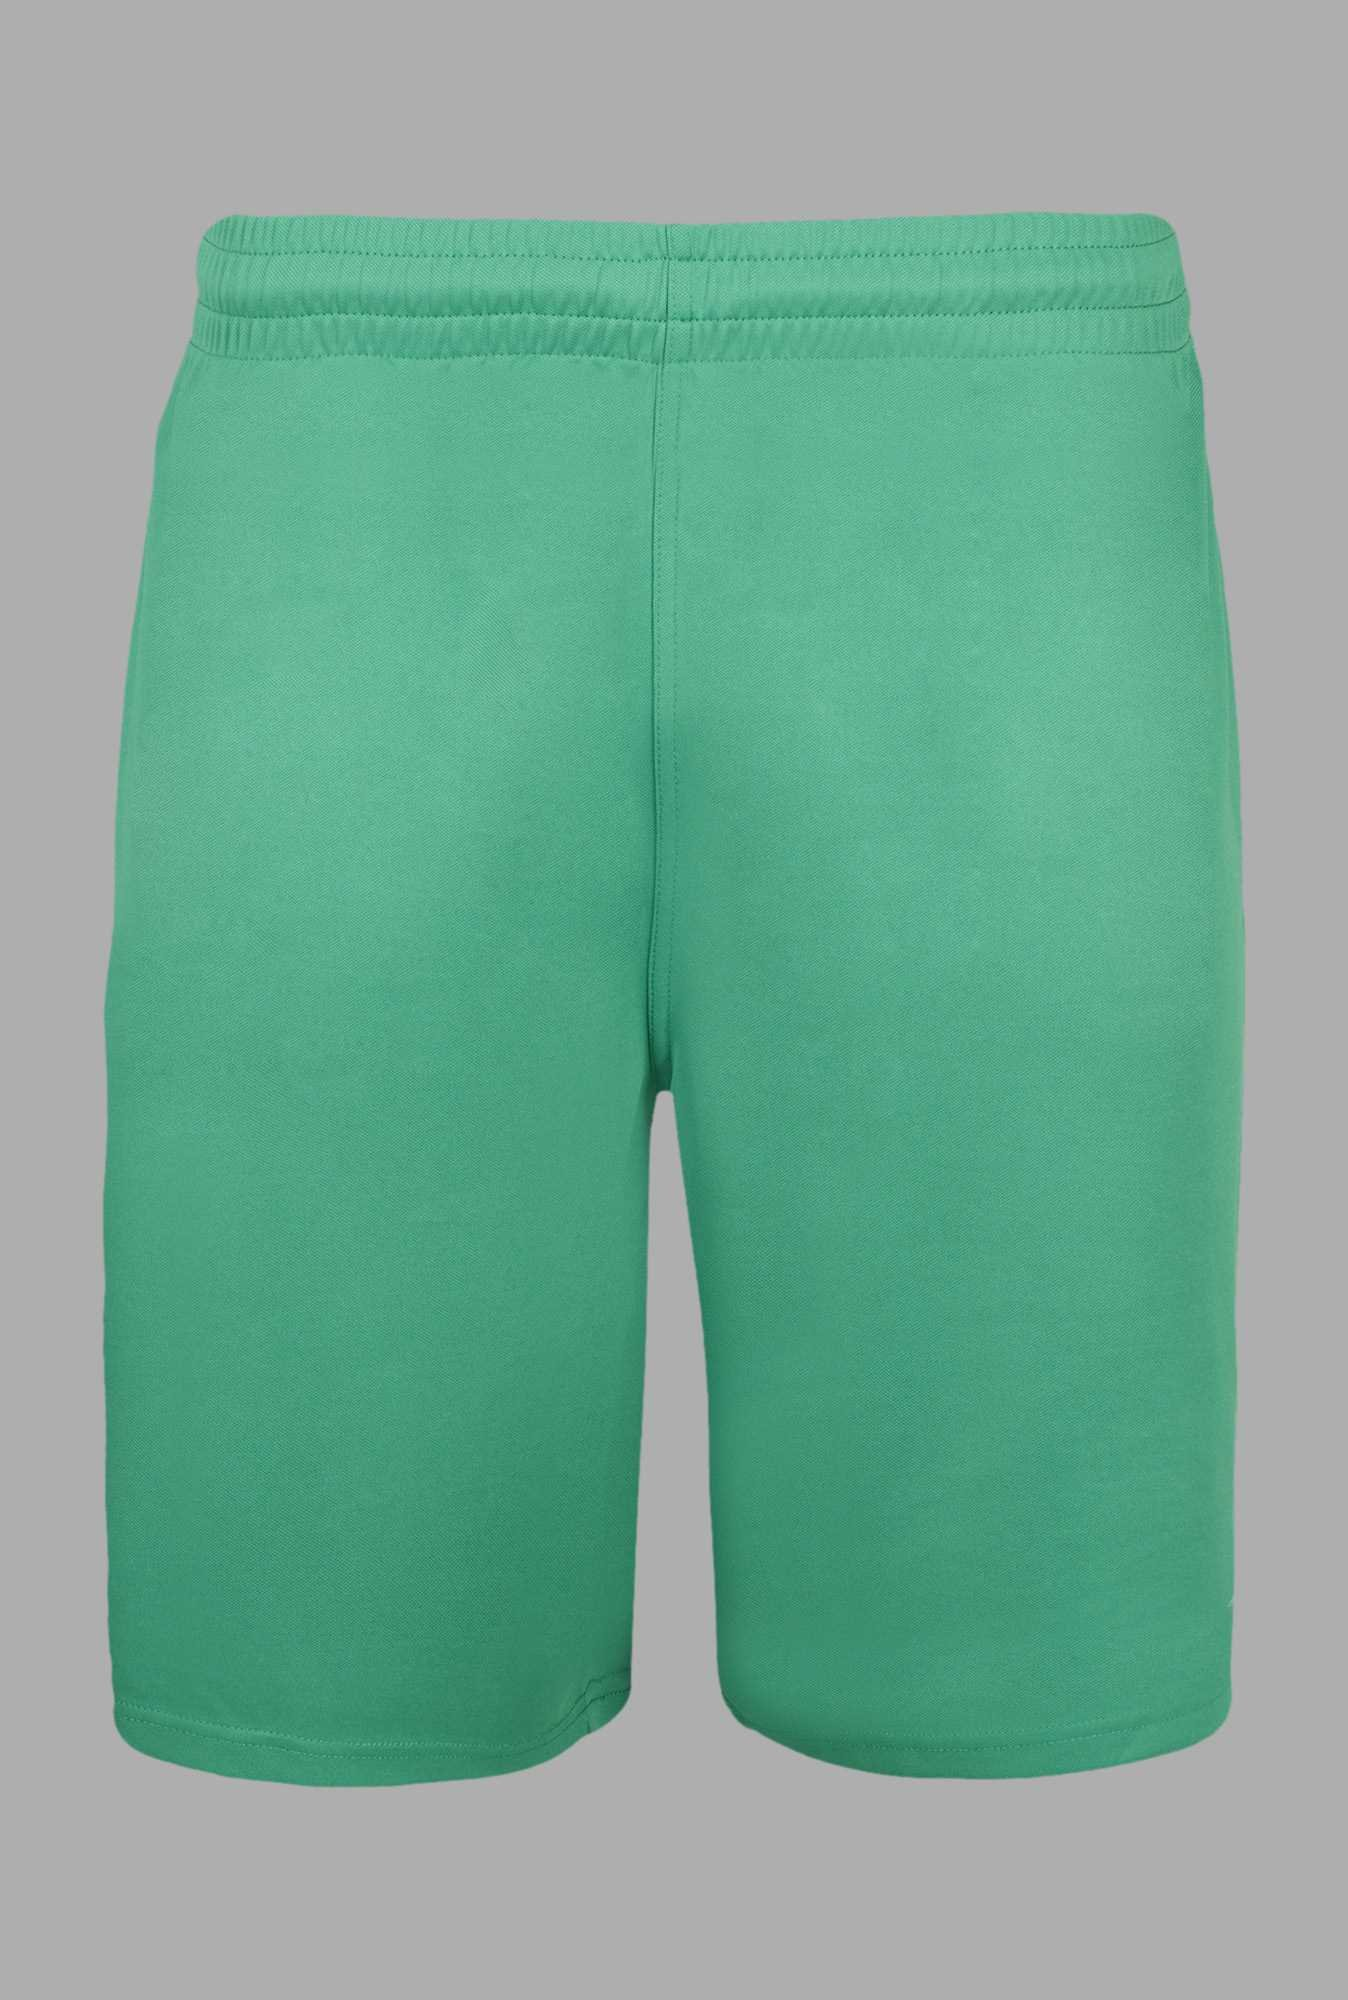 Team Quest Green Solid Football Shorts